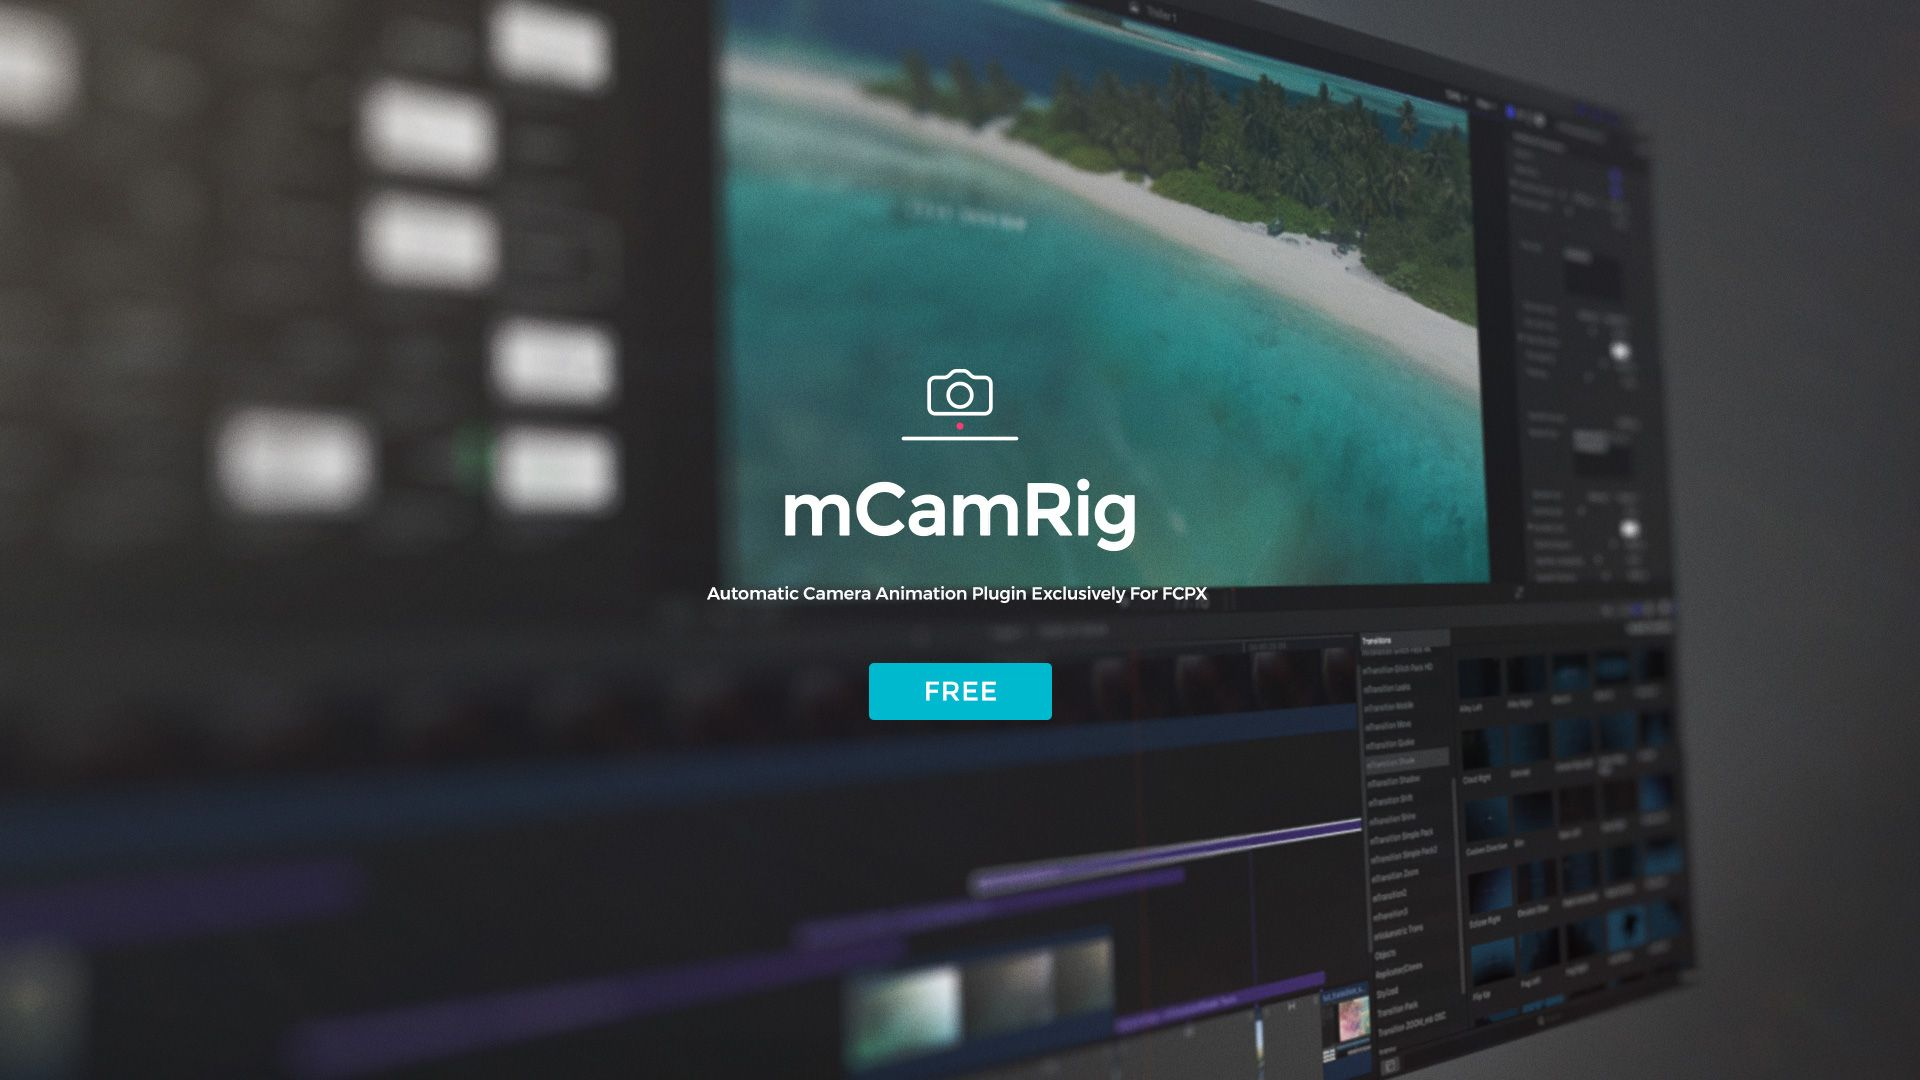 Free Fcpx Plugin Mcamrig Available Now Http Bit Ly Mcamrig Finalcutprox Apple Videoediting Design Plugins Video Editing Free